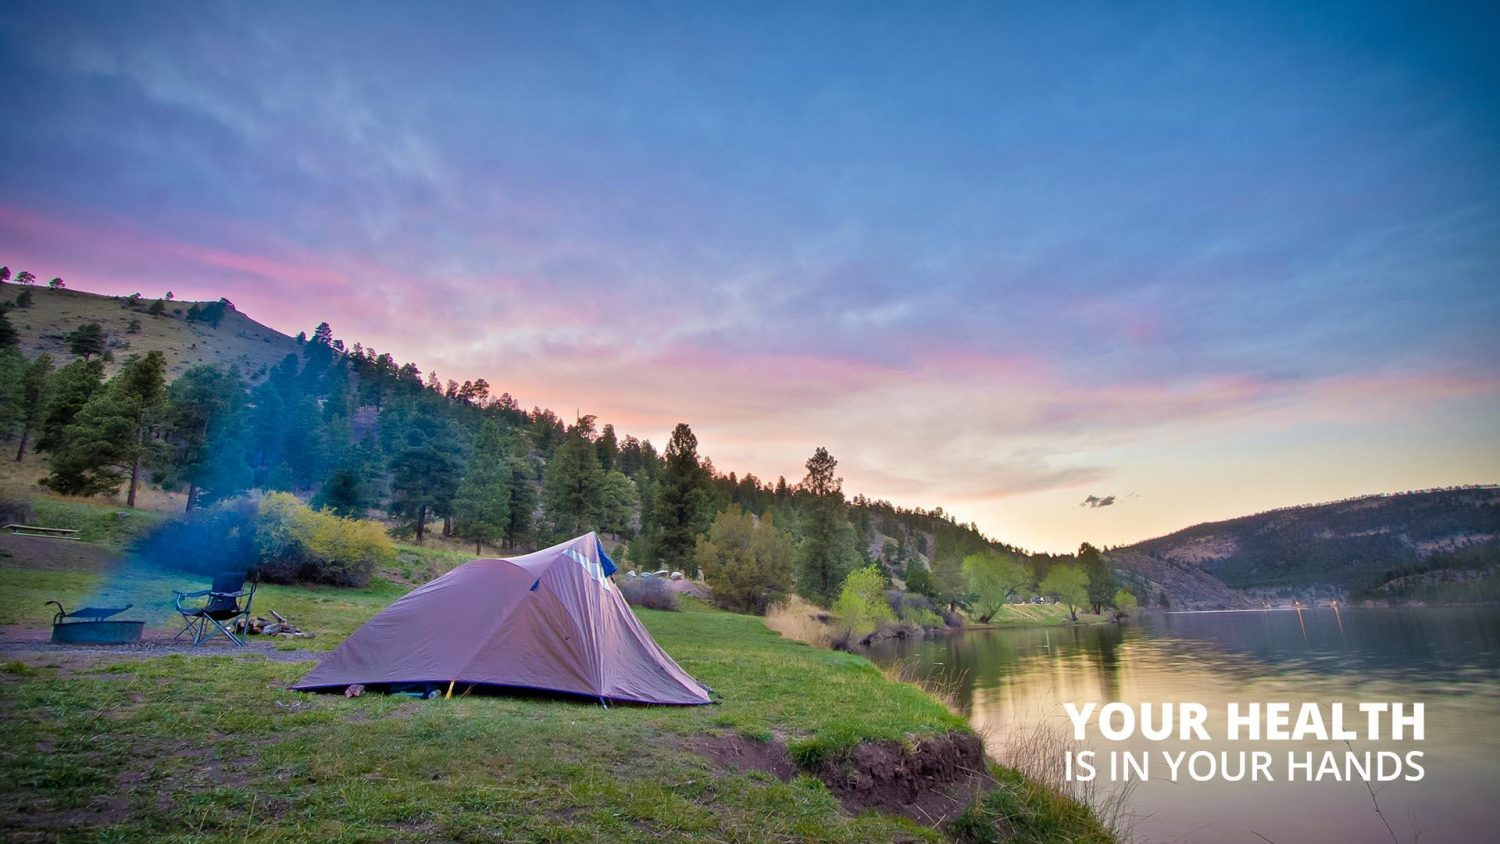 Tips for a Safer, Healthier Camping Trip In Montana